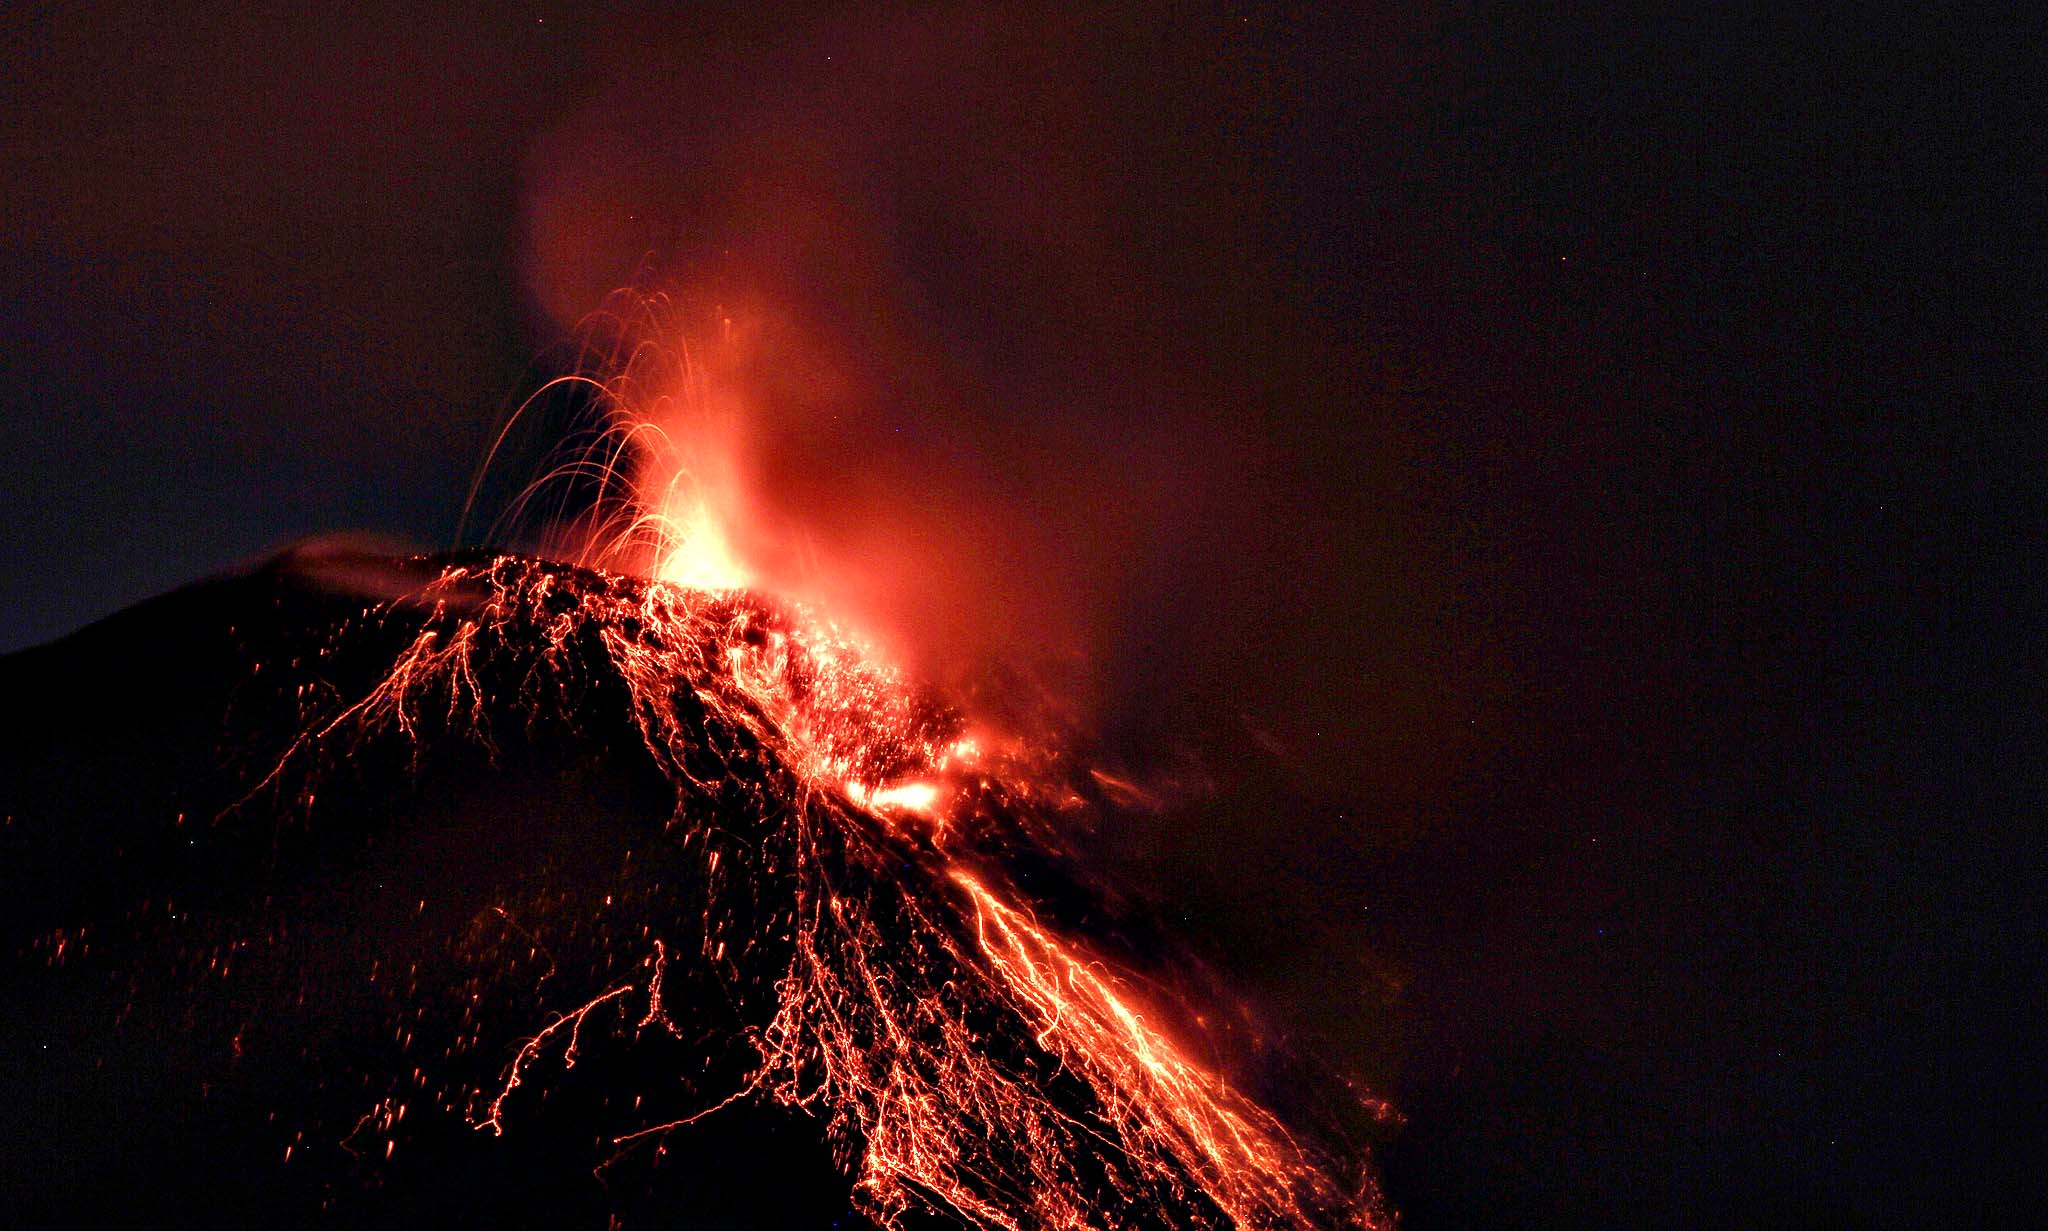 Lava spewed by the Tungurahua volcano can be seen from the city of Banos, Ecuador. An orange alert was issued by the volcanic activity of the Tungurahua